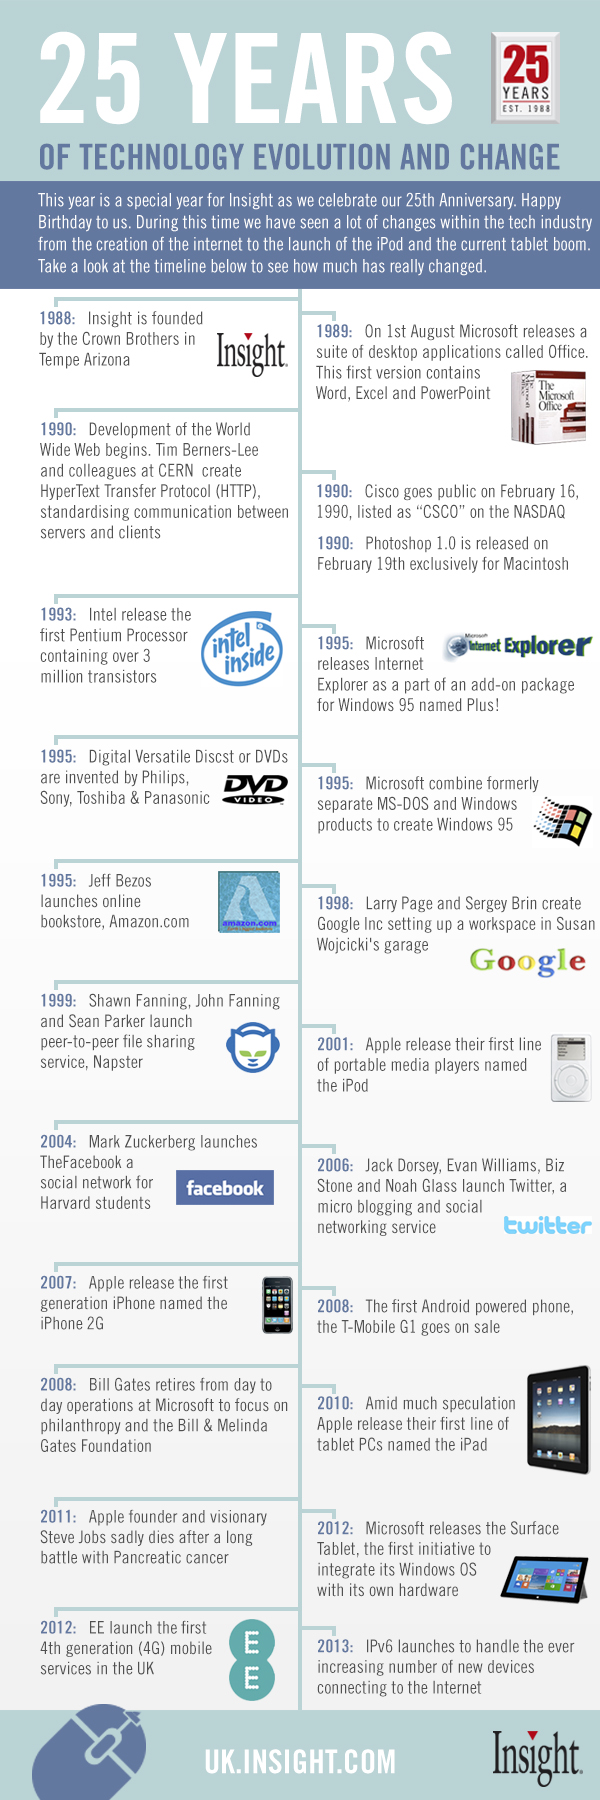 25 Years of Technology-Infographic